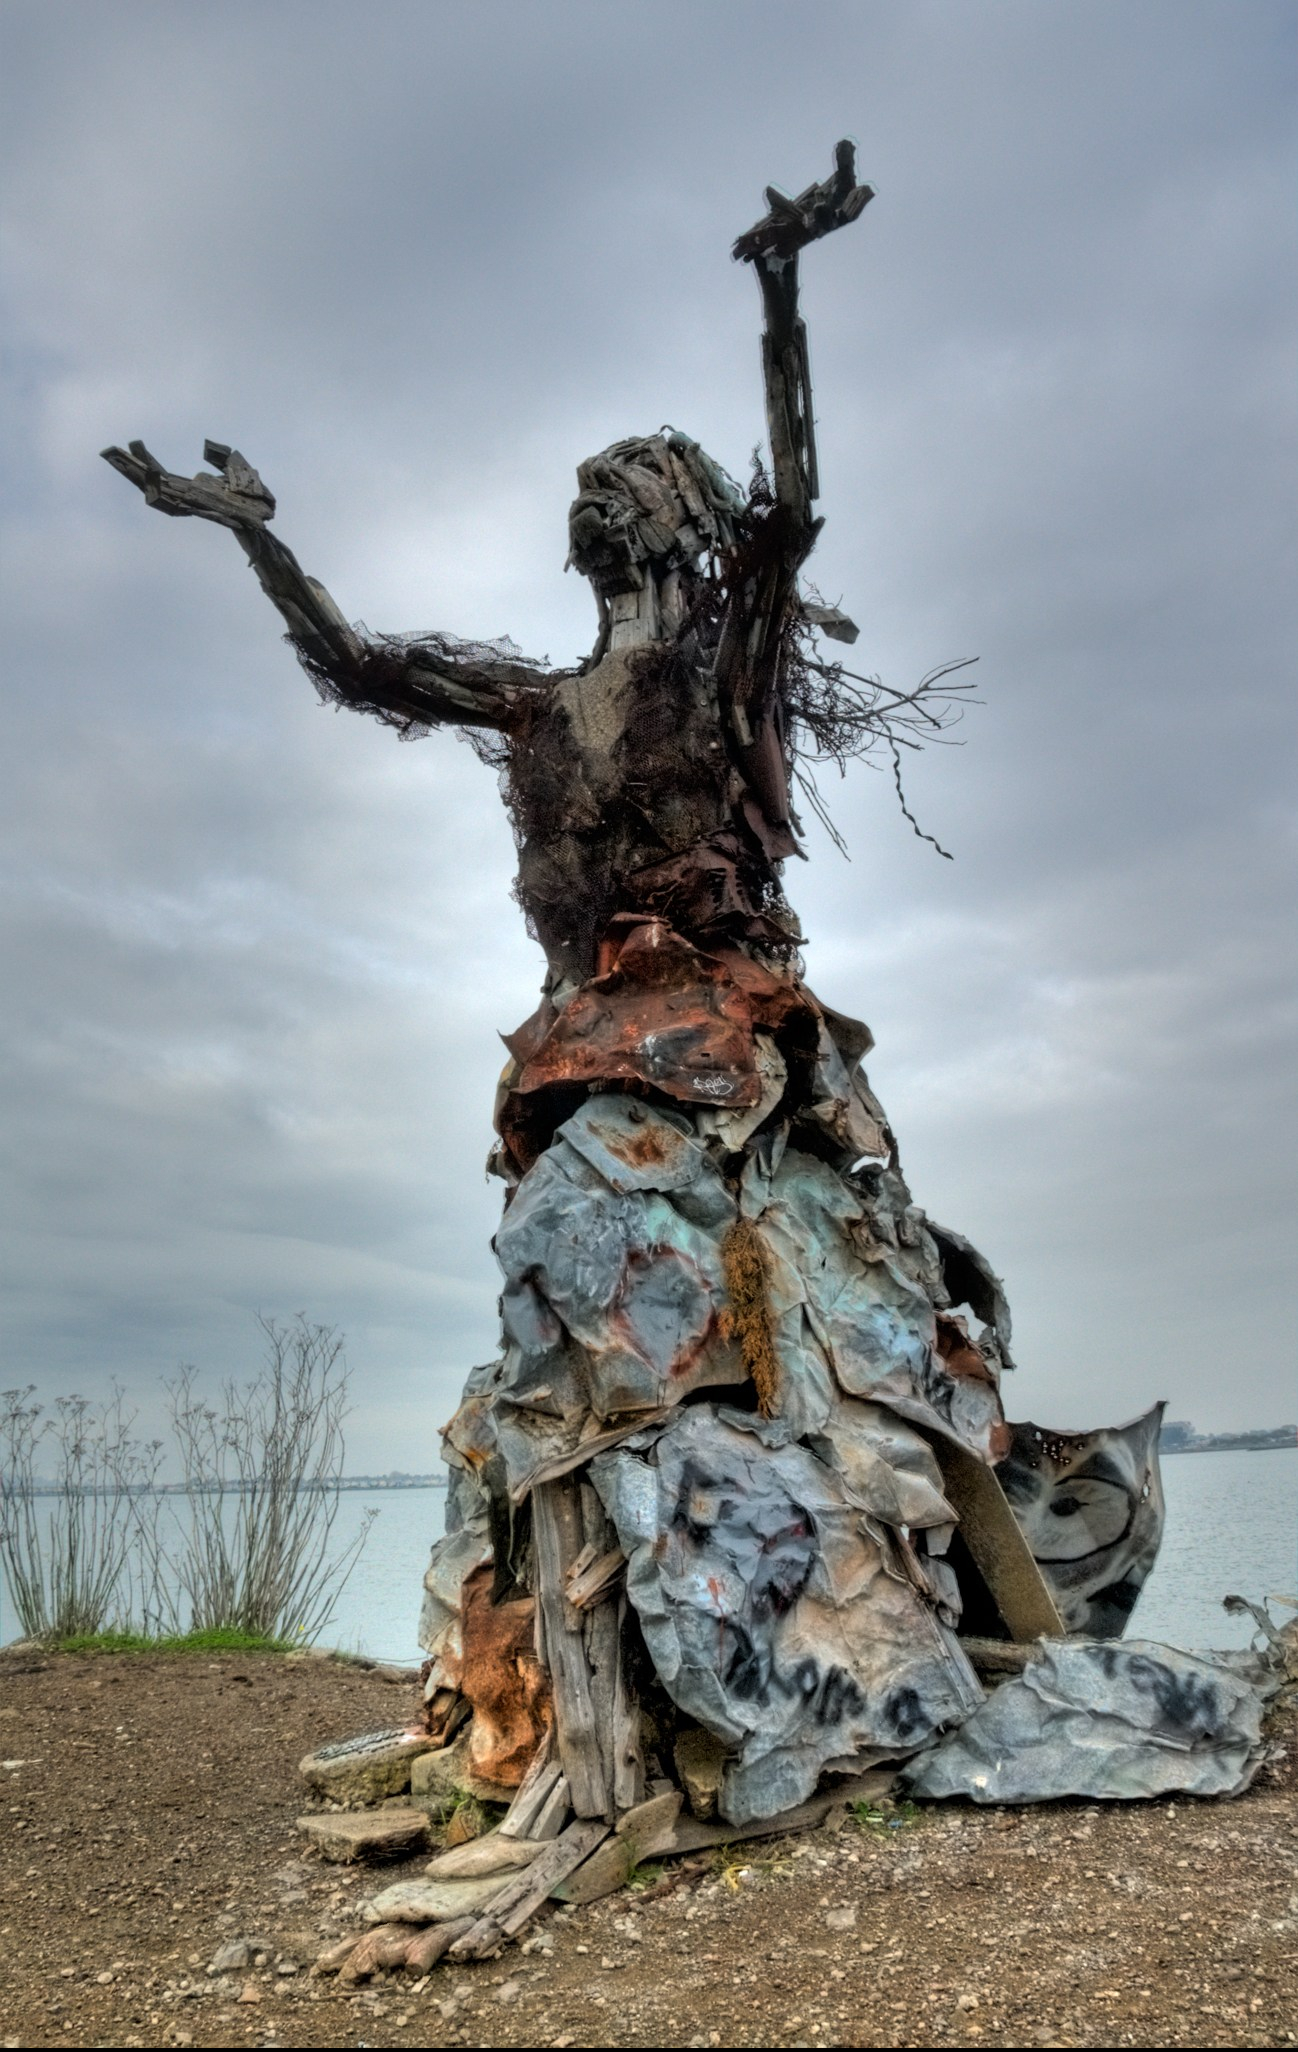 Art from recycled material at the Albany Bulb, a former landfill site.